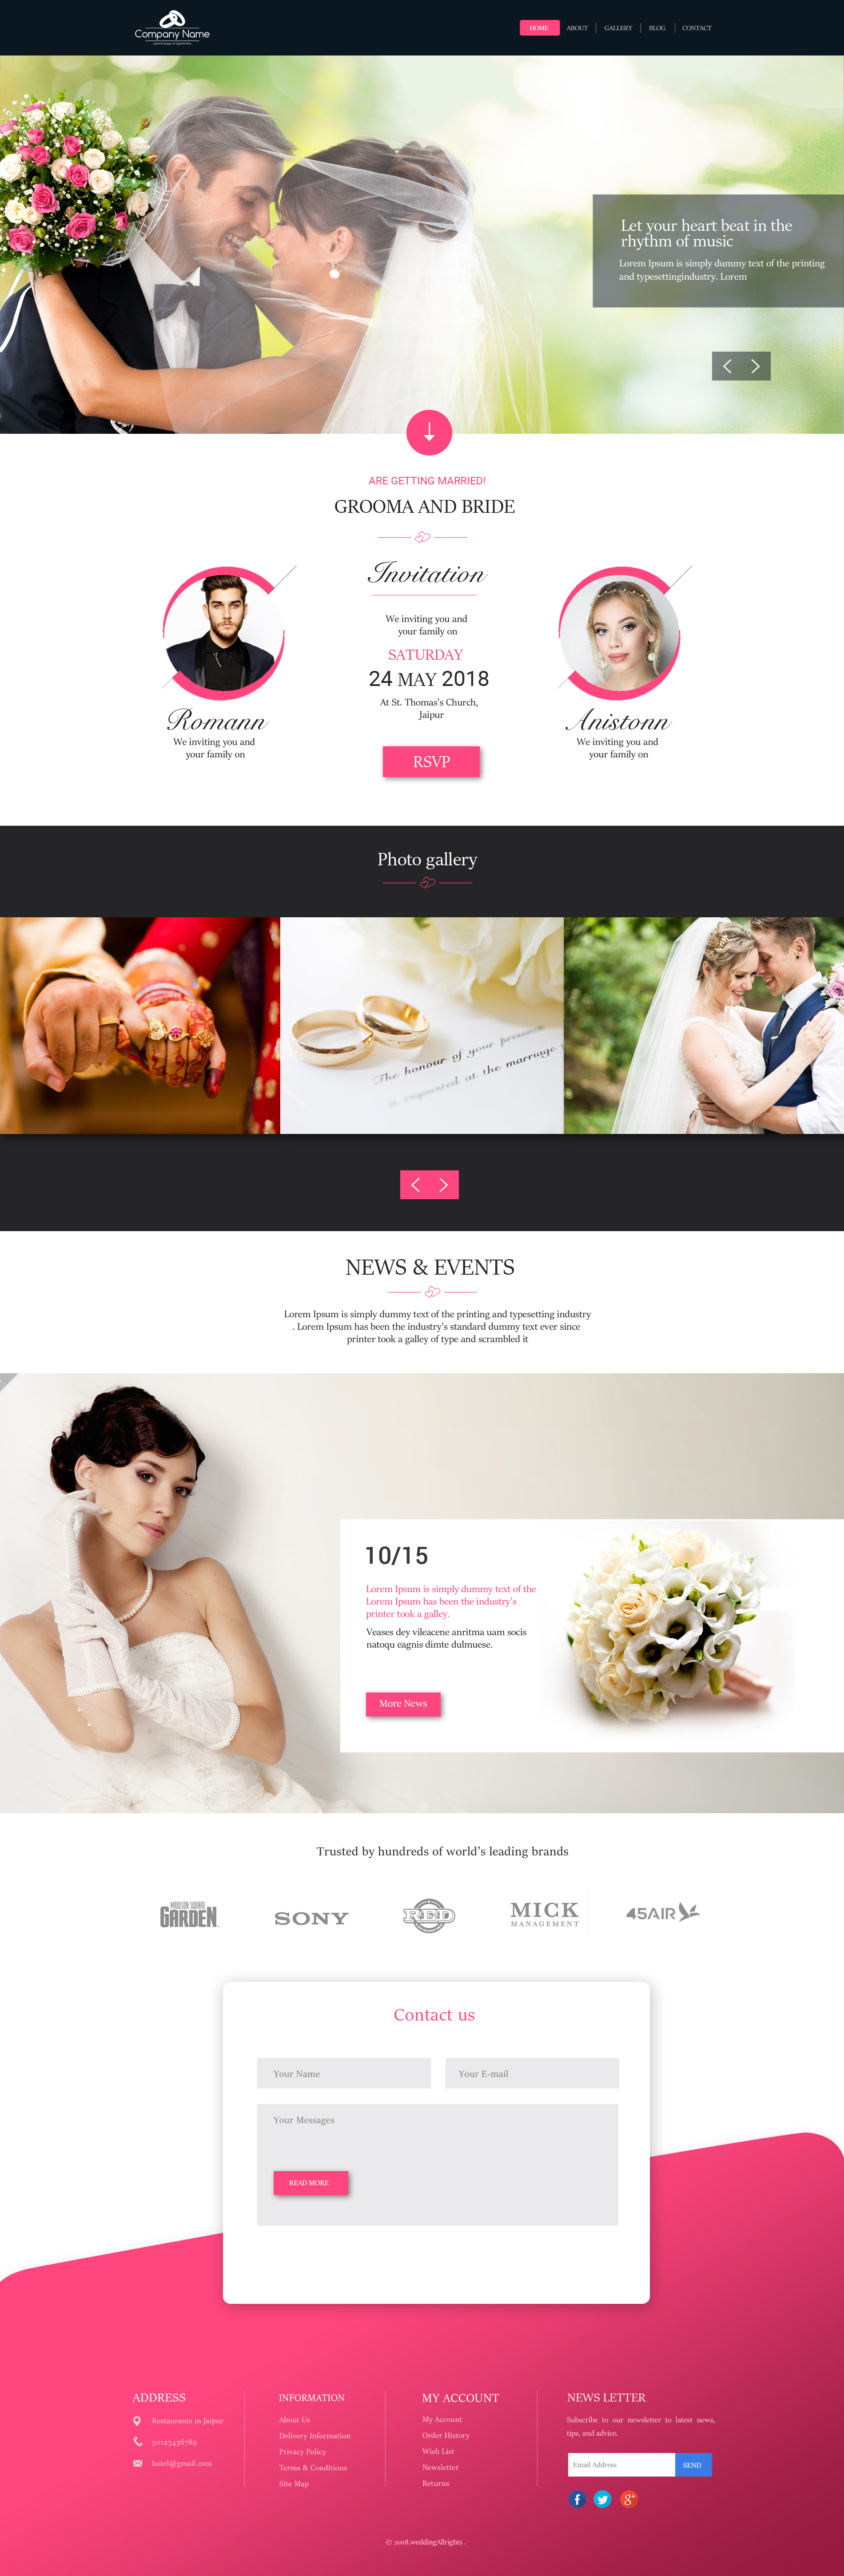 Wedding Home page (2)